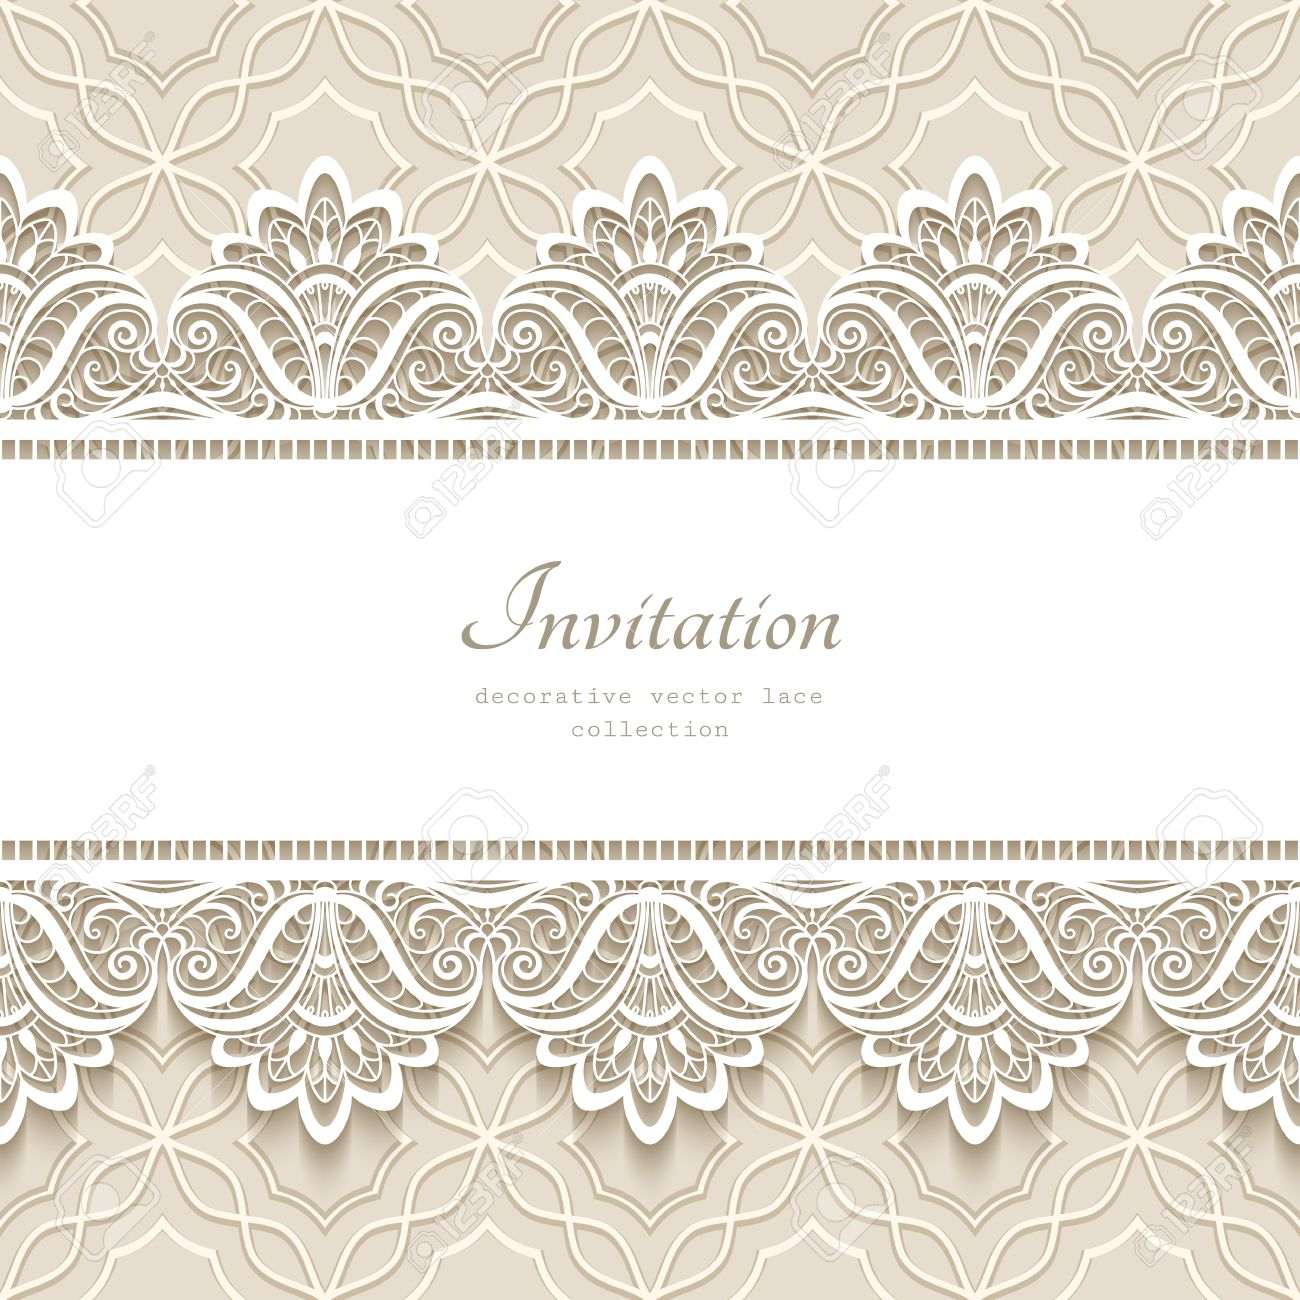 395126cf9a Vector - Vintage lace background with seamless border ornament